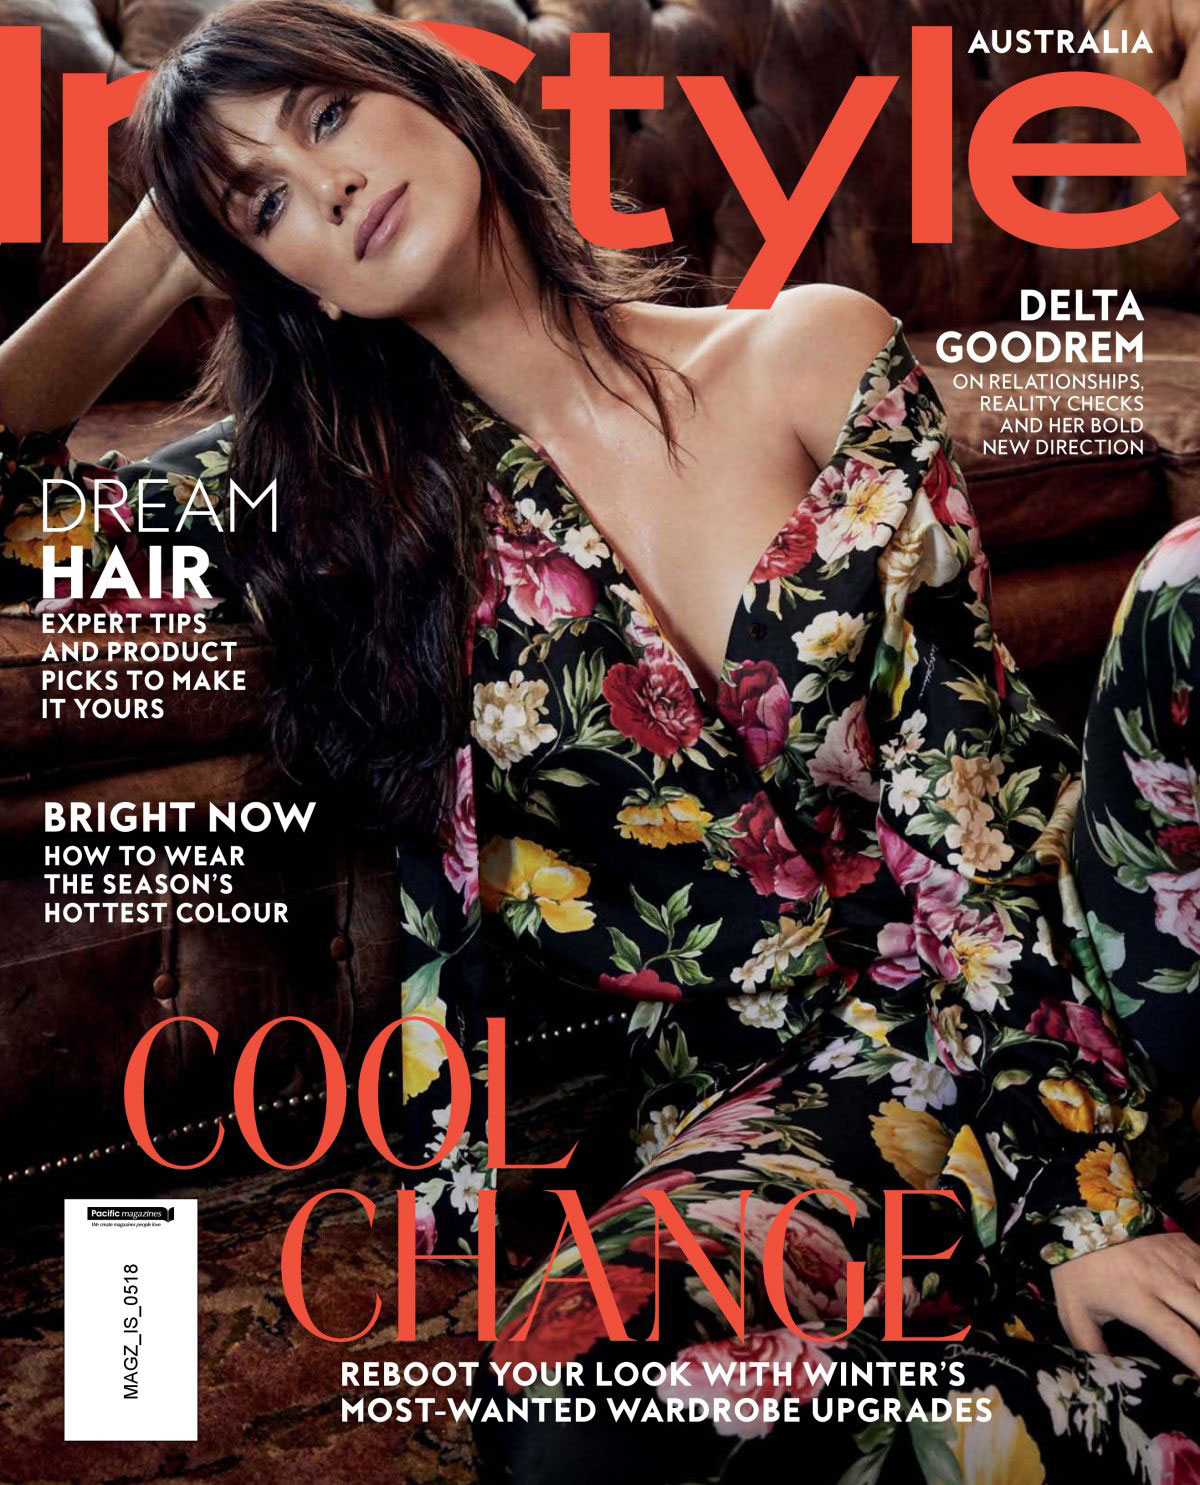 magazine covers delta goodrem instyle magazine australia may 2018 justfabzz. Black Bedroom Furniture Sets. Home Design Ideas